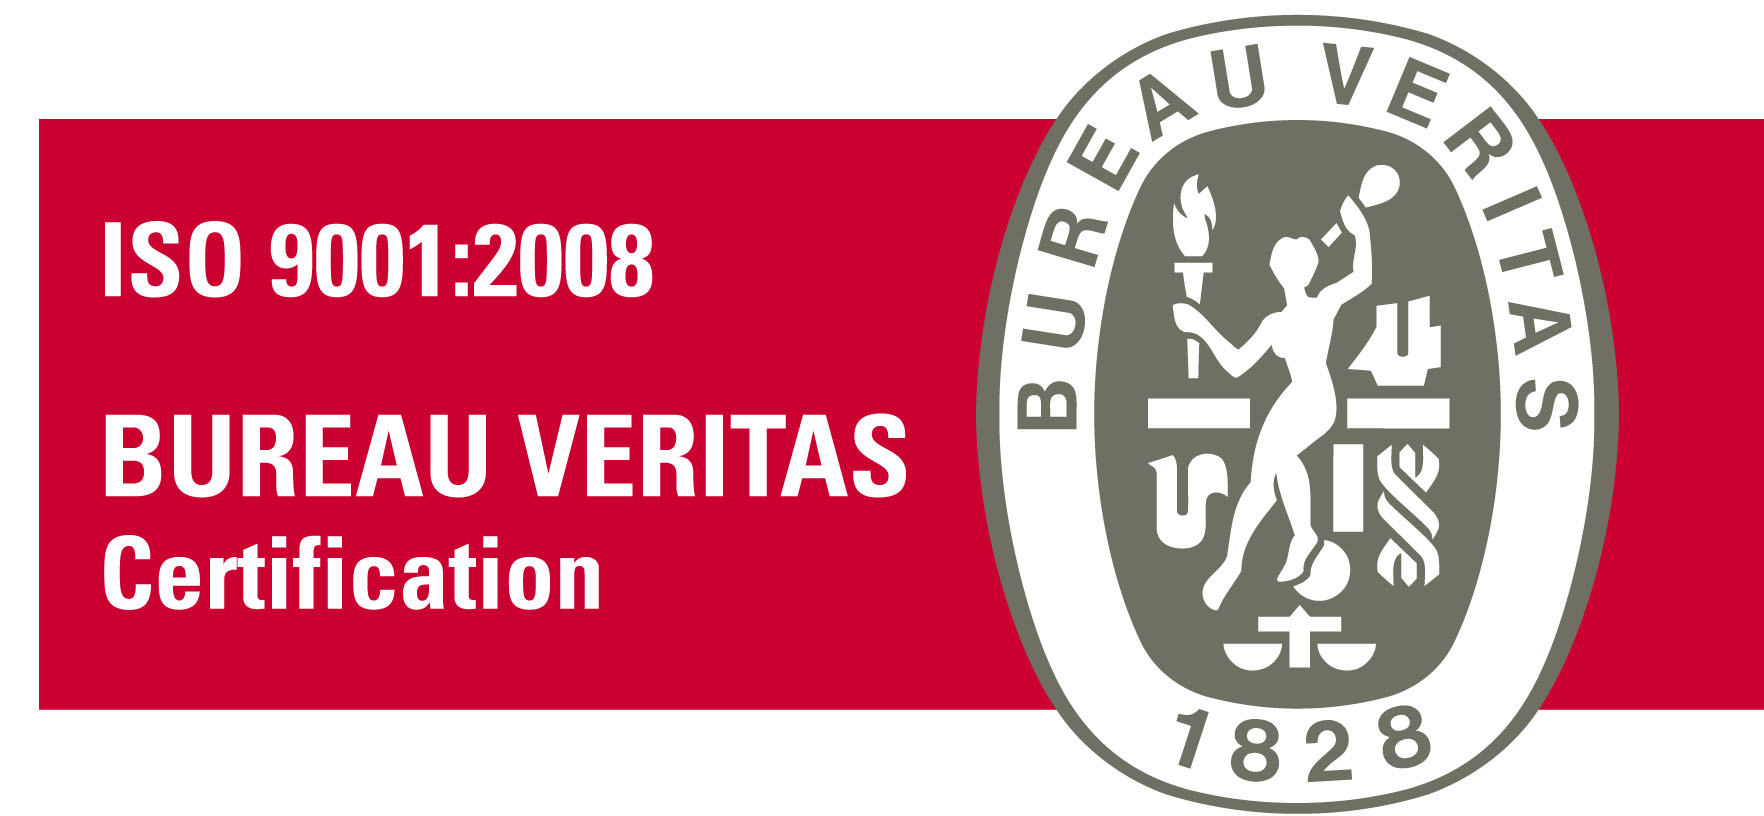 certification iso-9001-20081